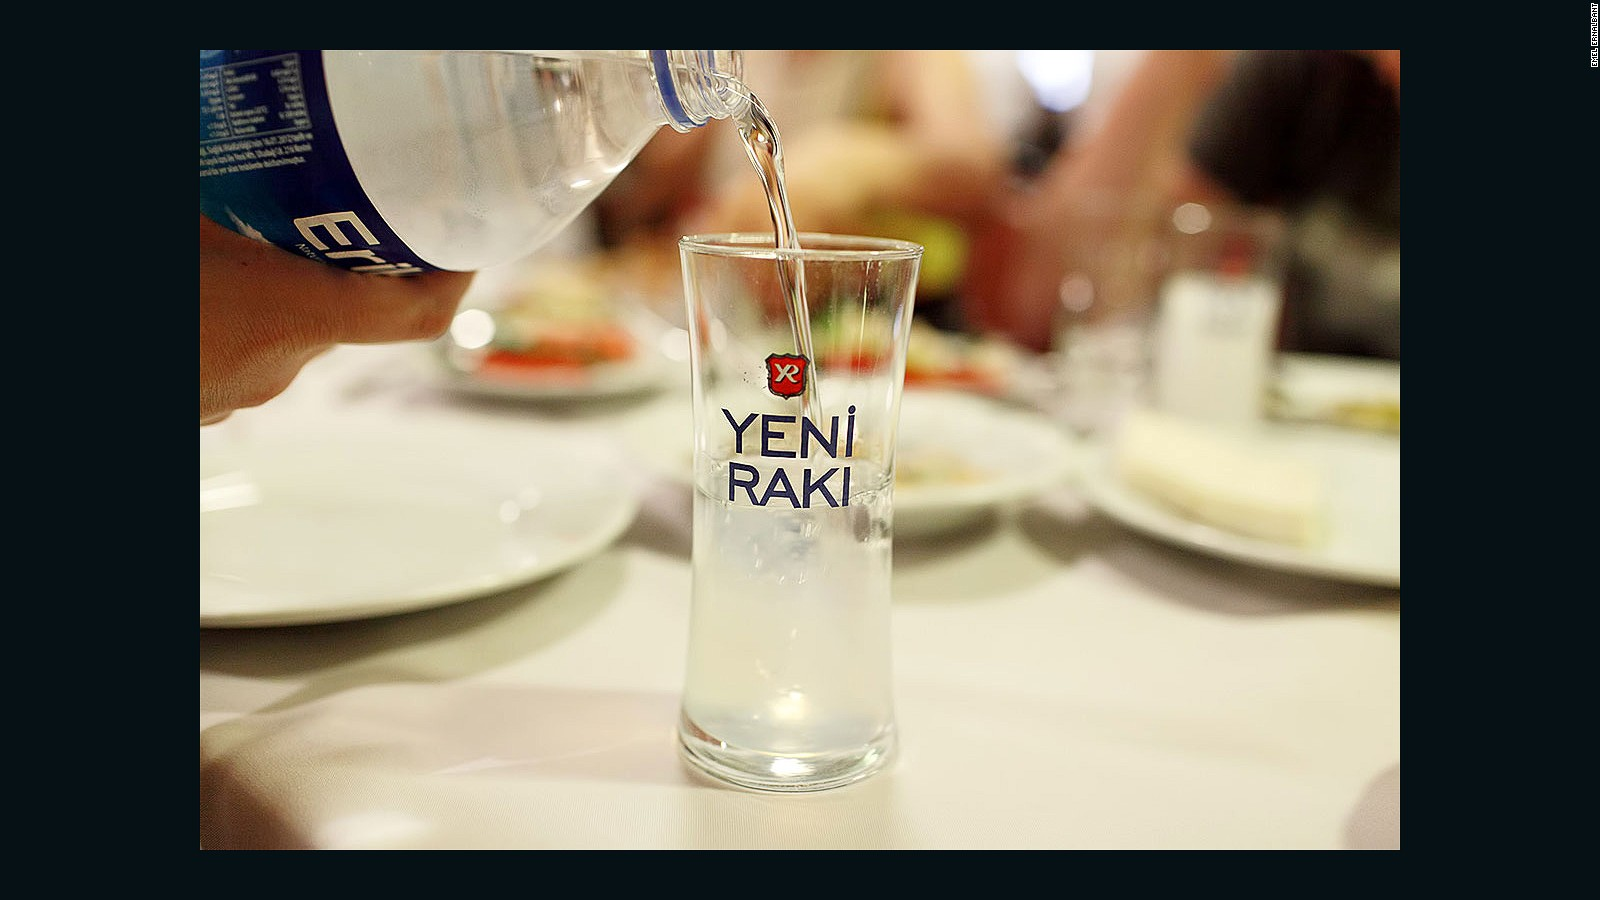 How to drink raki, Turkey's signature drink | CNN Travel